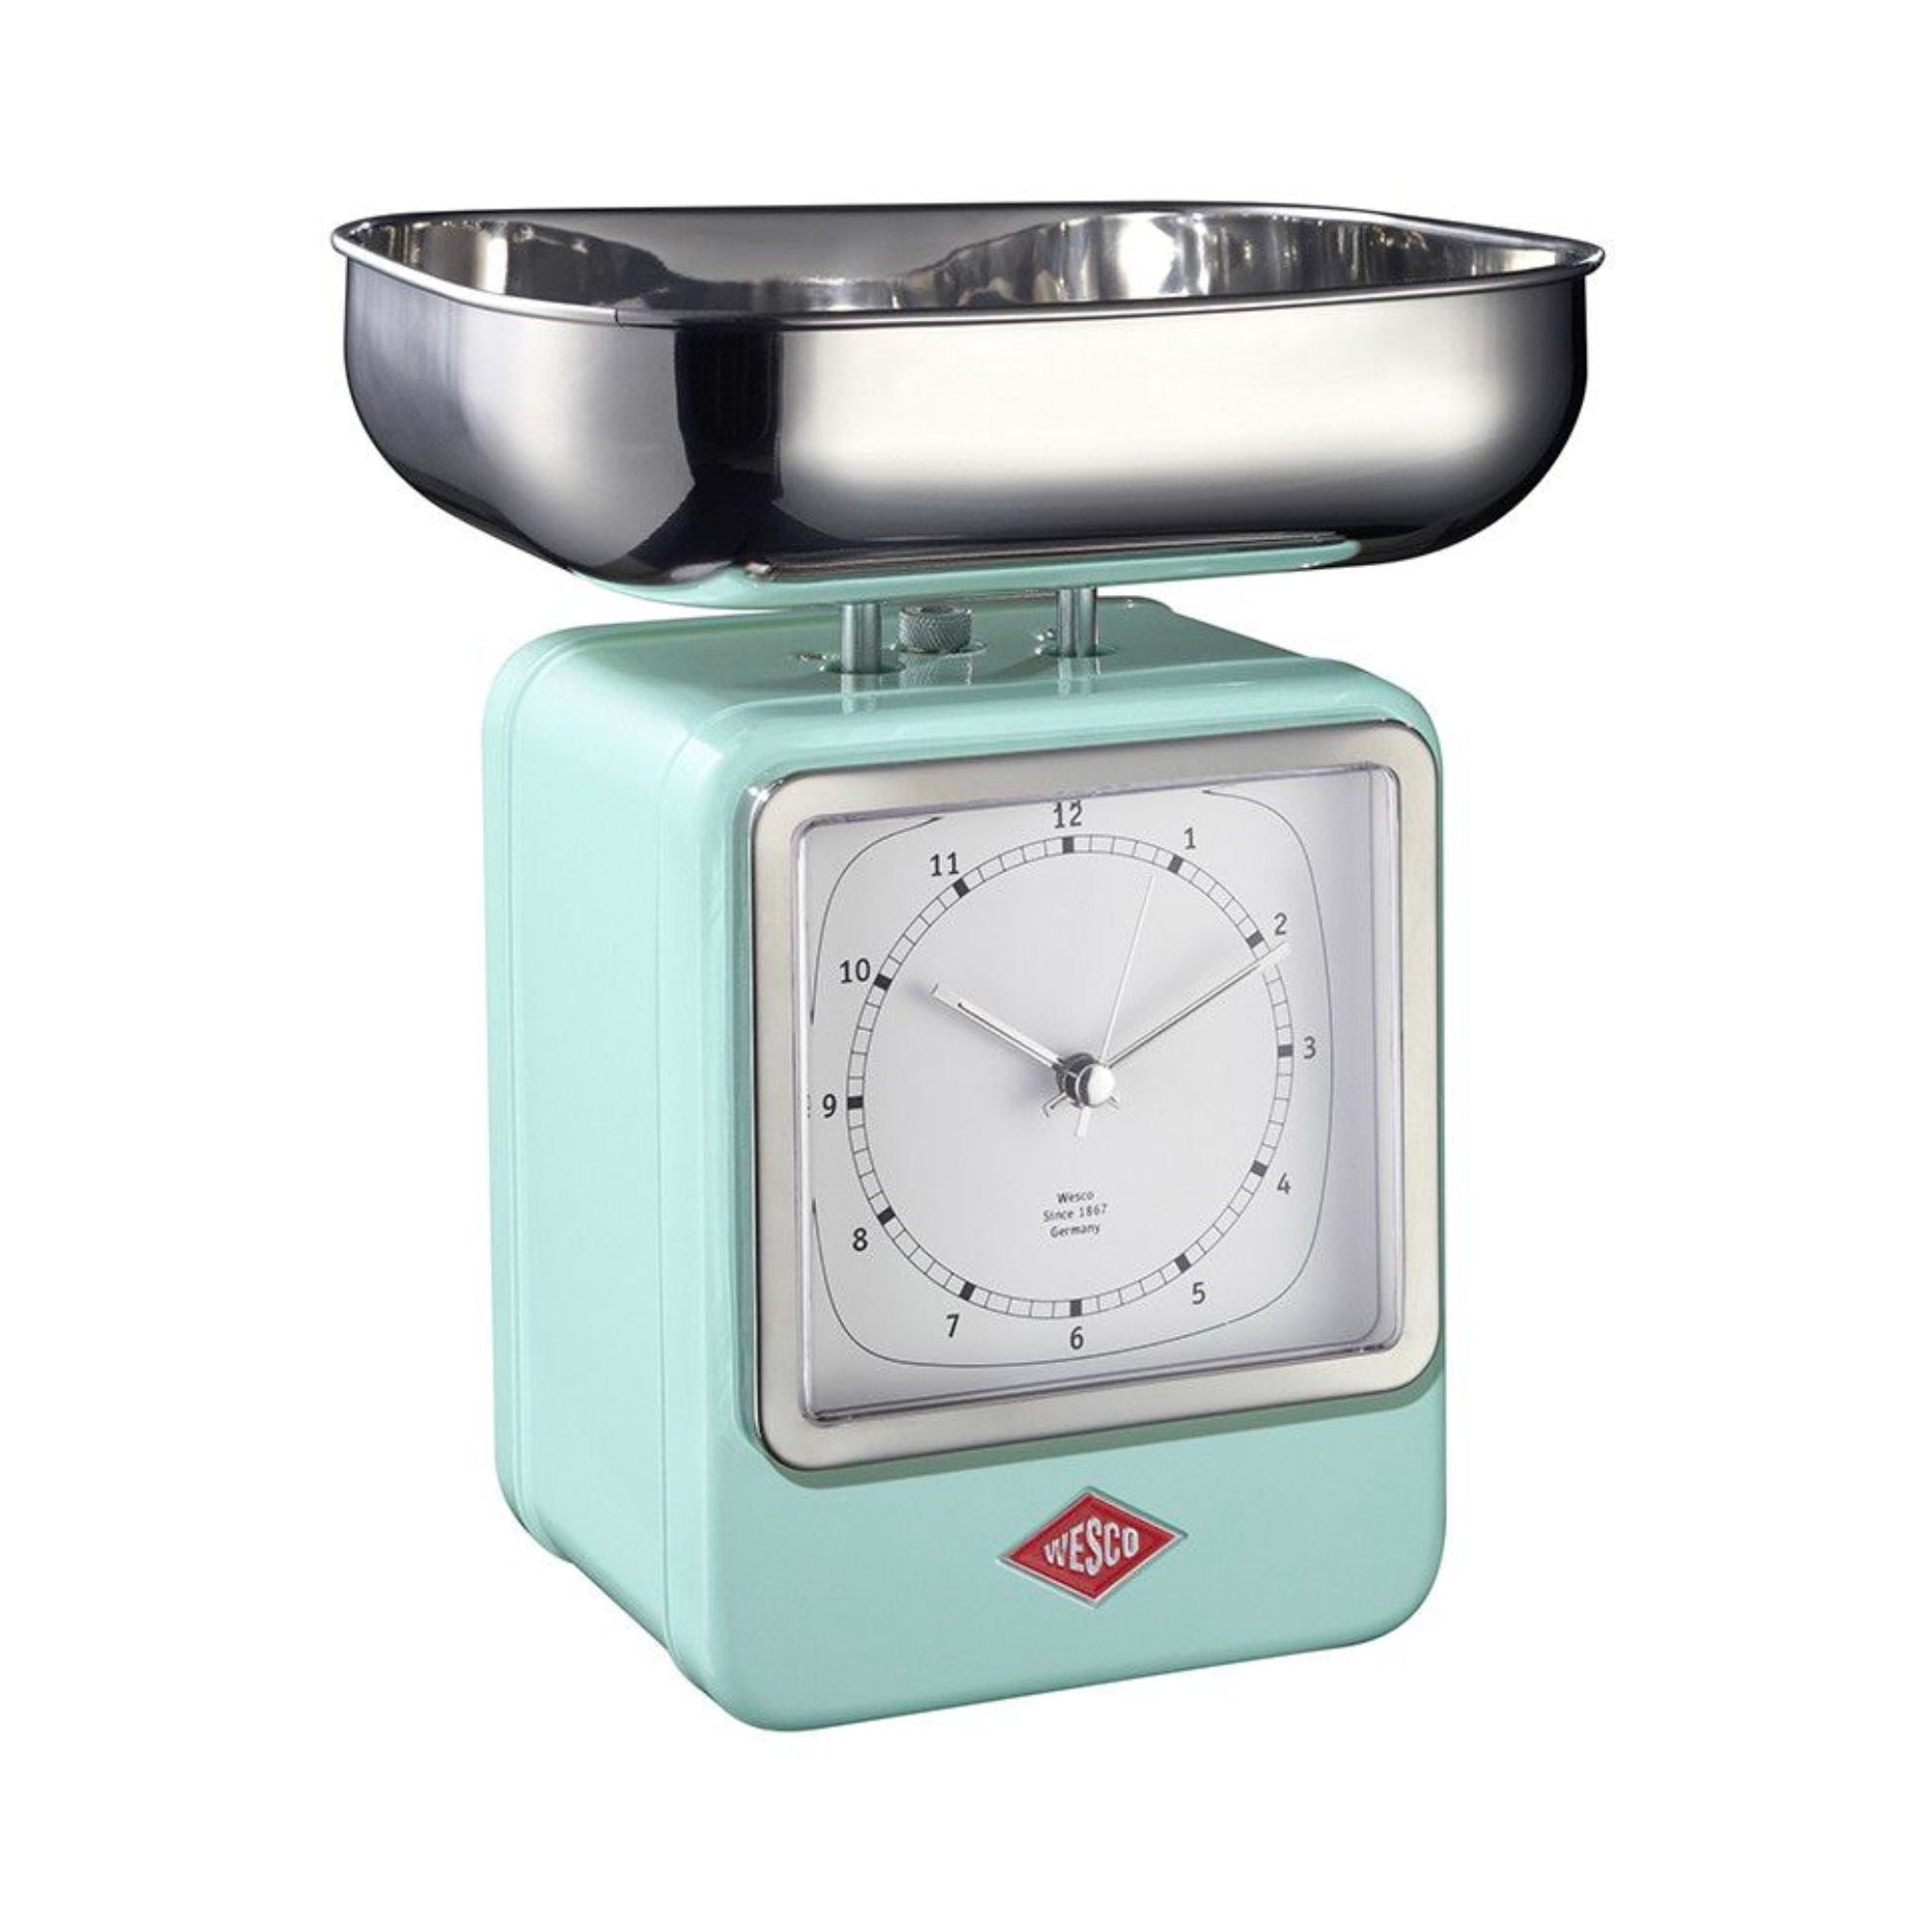 Wesco Retro Scale w. Clock , Mint